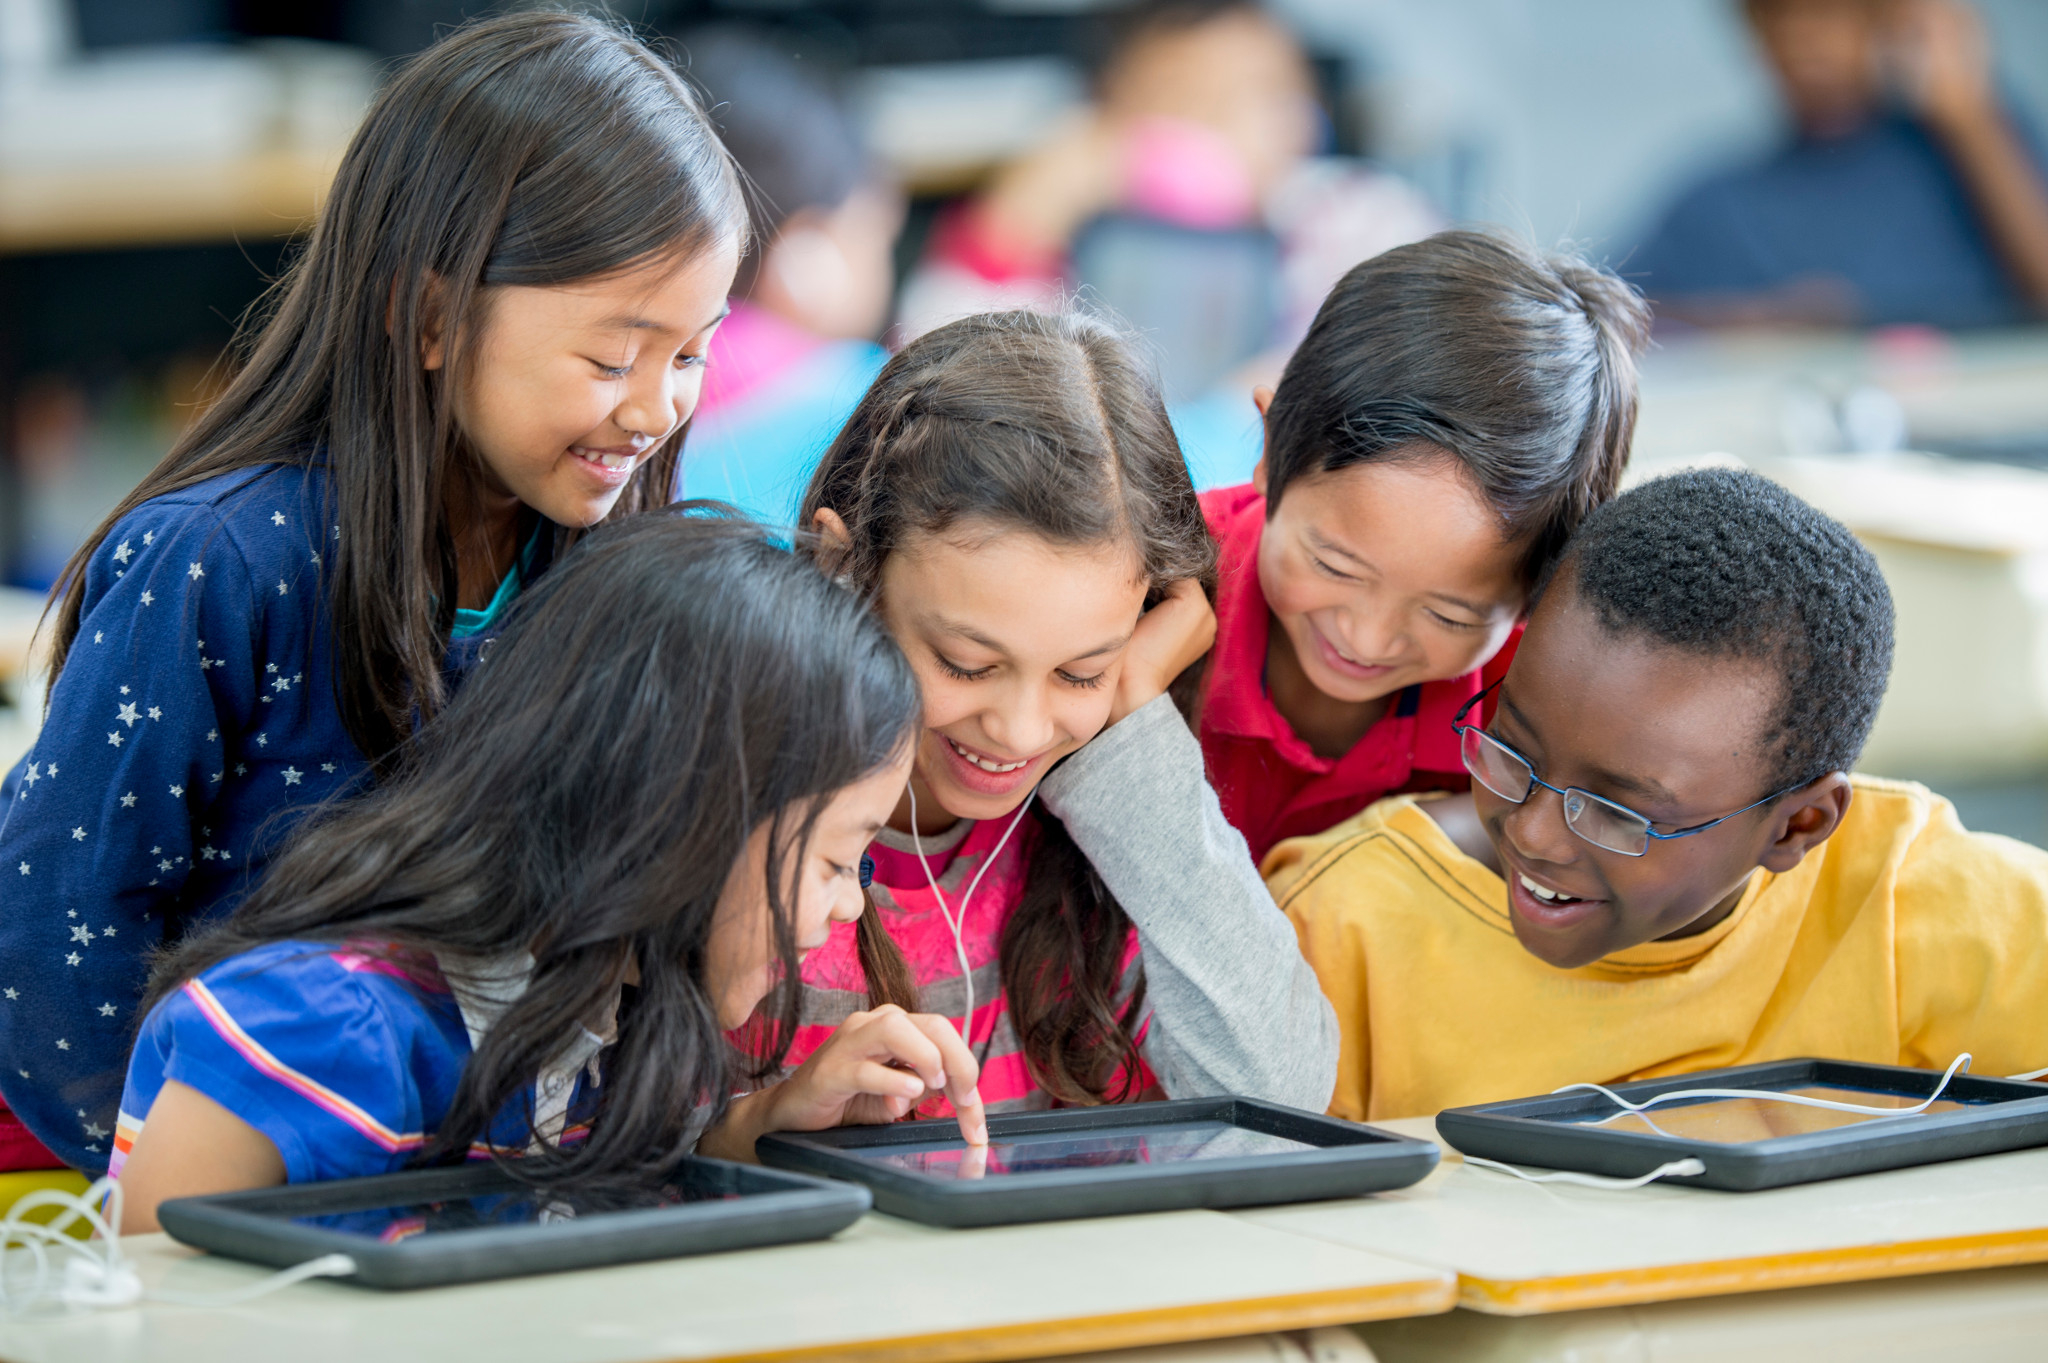 Students reading tablet